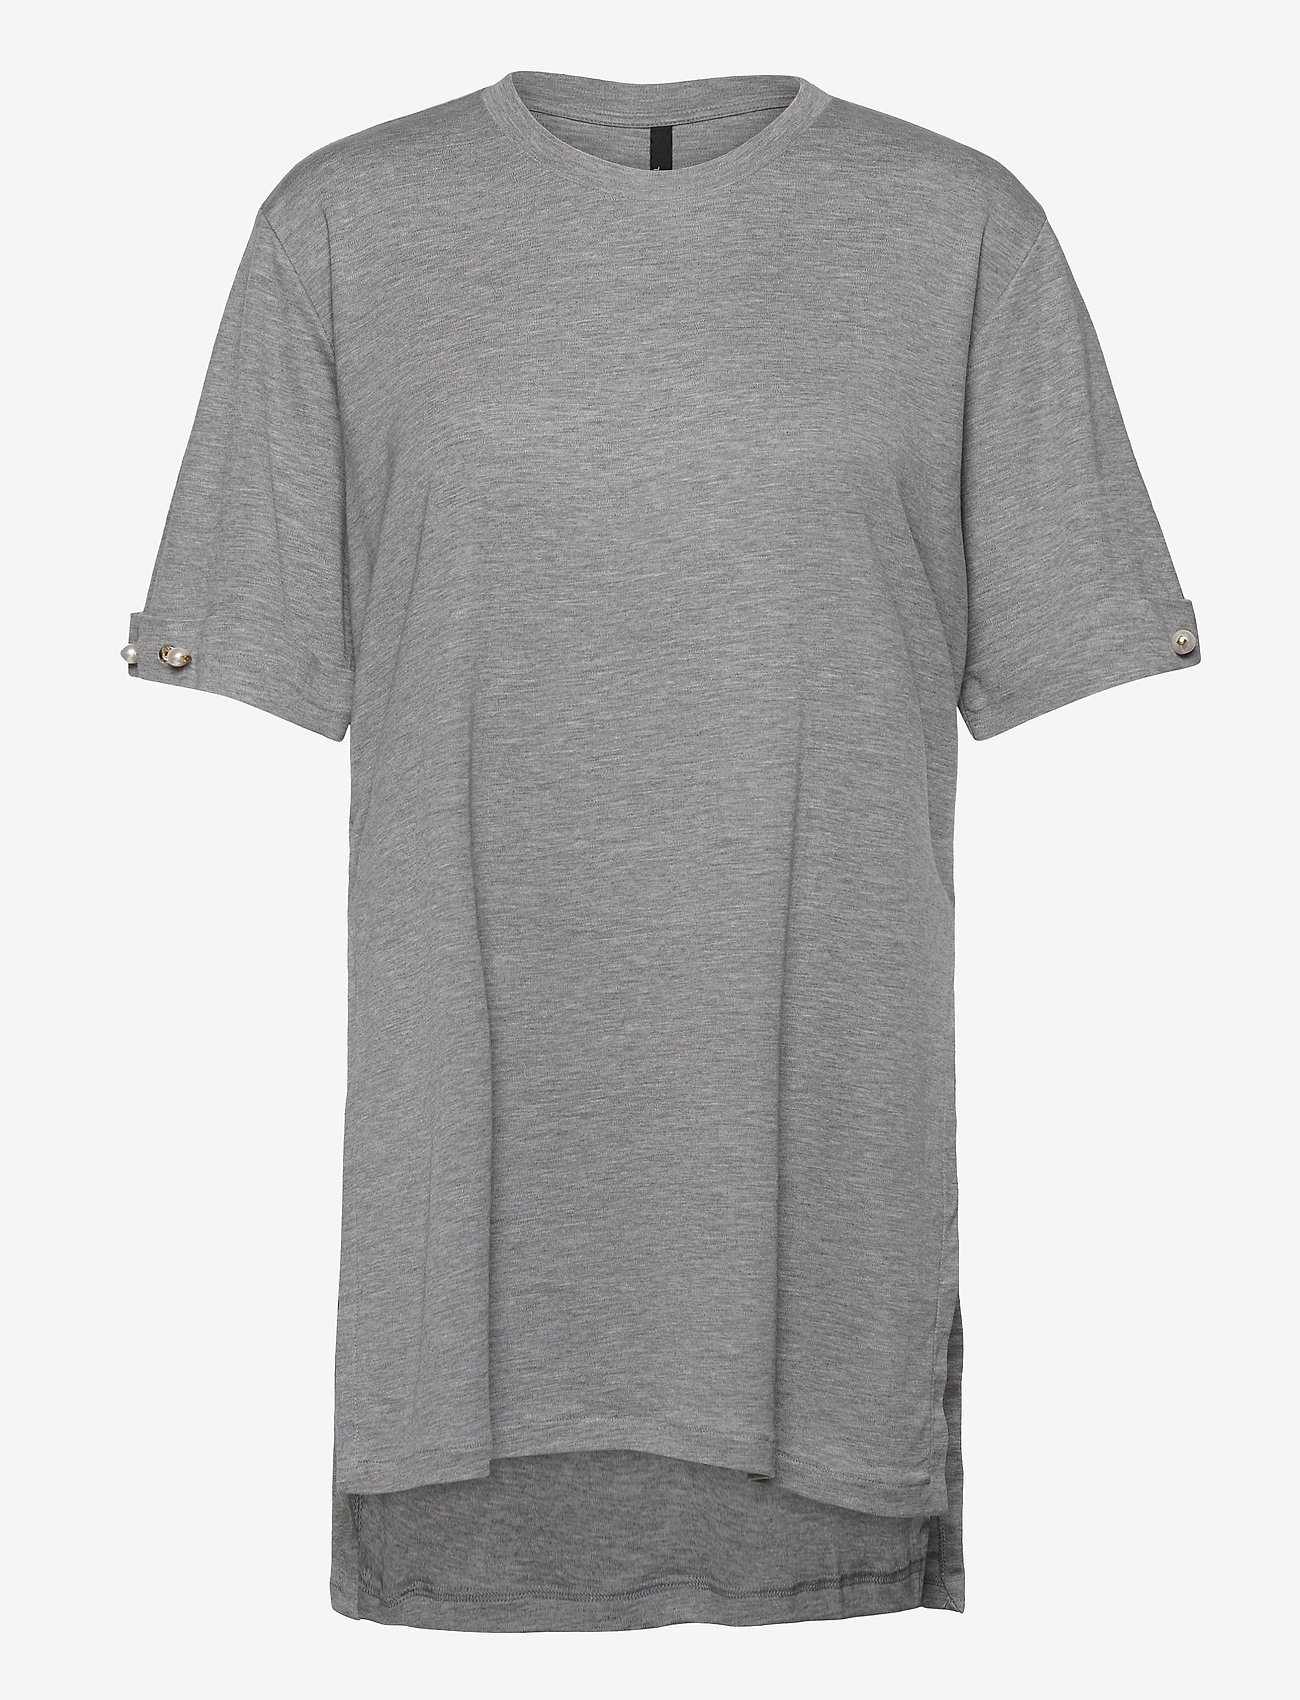 Mother of Pearl - MINTIE T-SHIRT - t-shirts - grey - 0